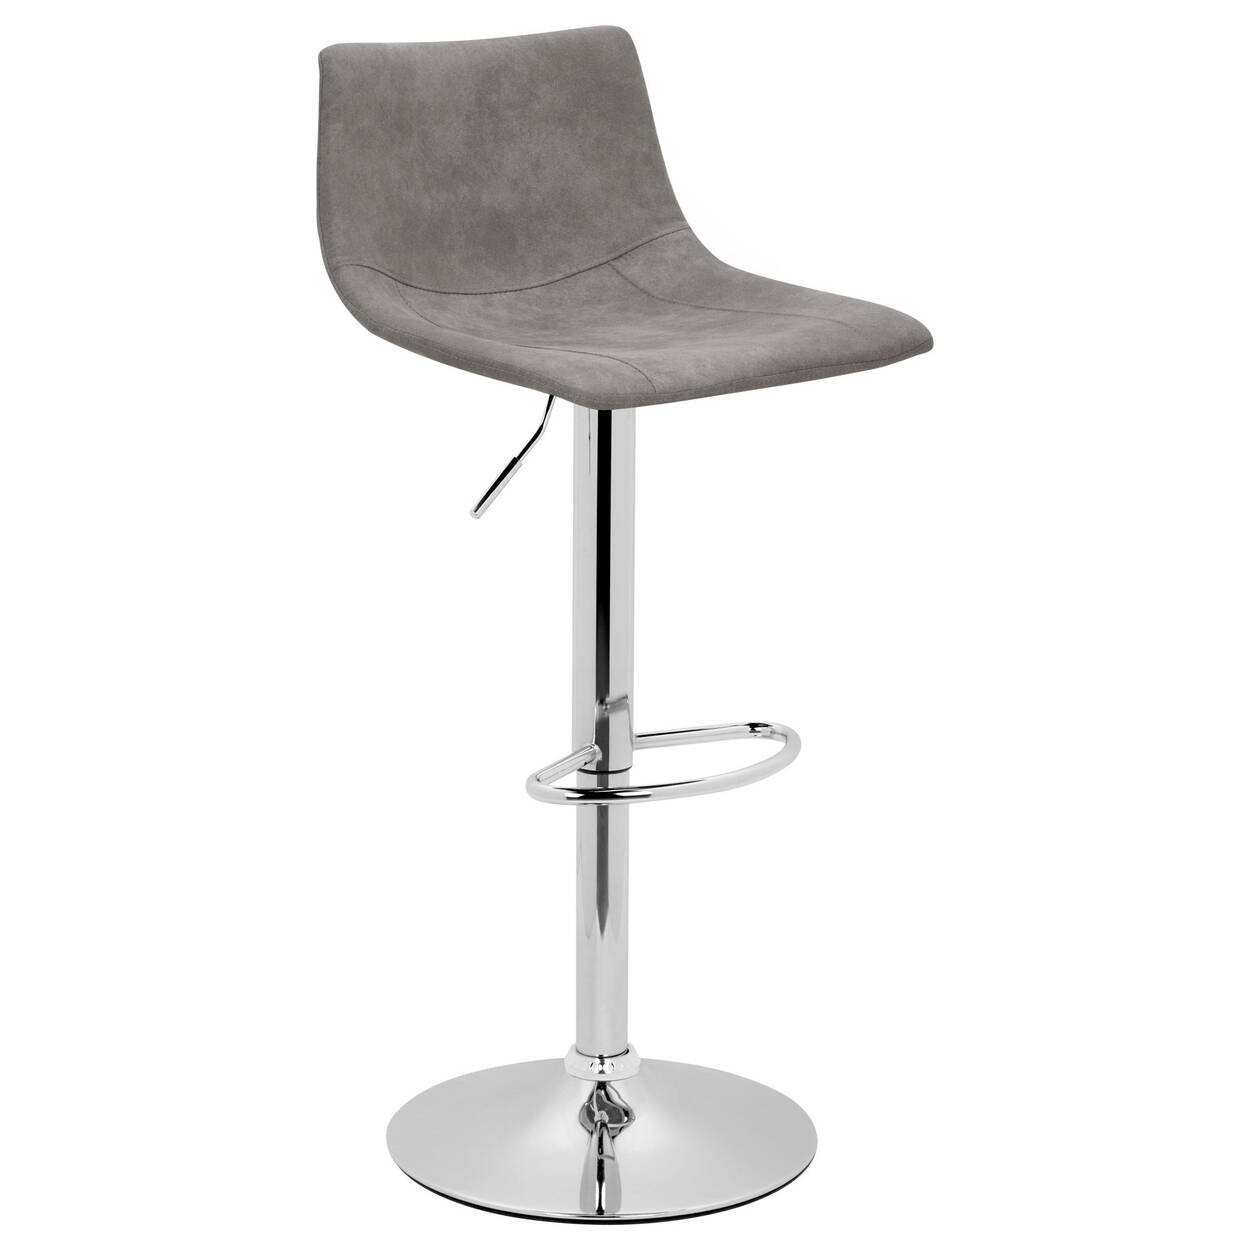 Textured Faux Leather Amp Chrome Adjustable Bar Stool